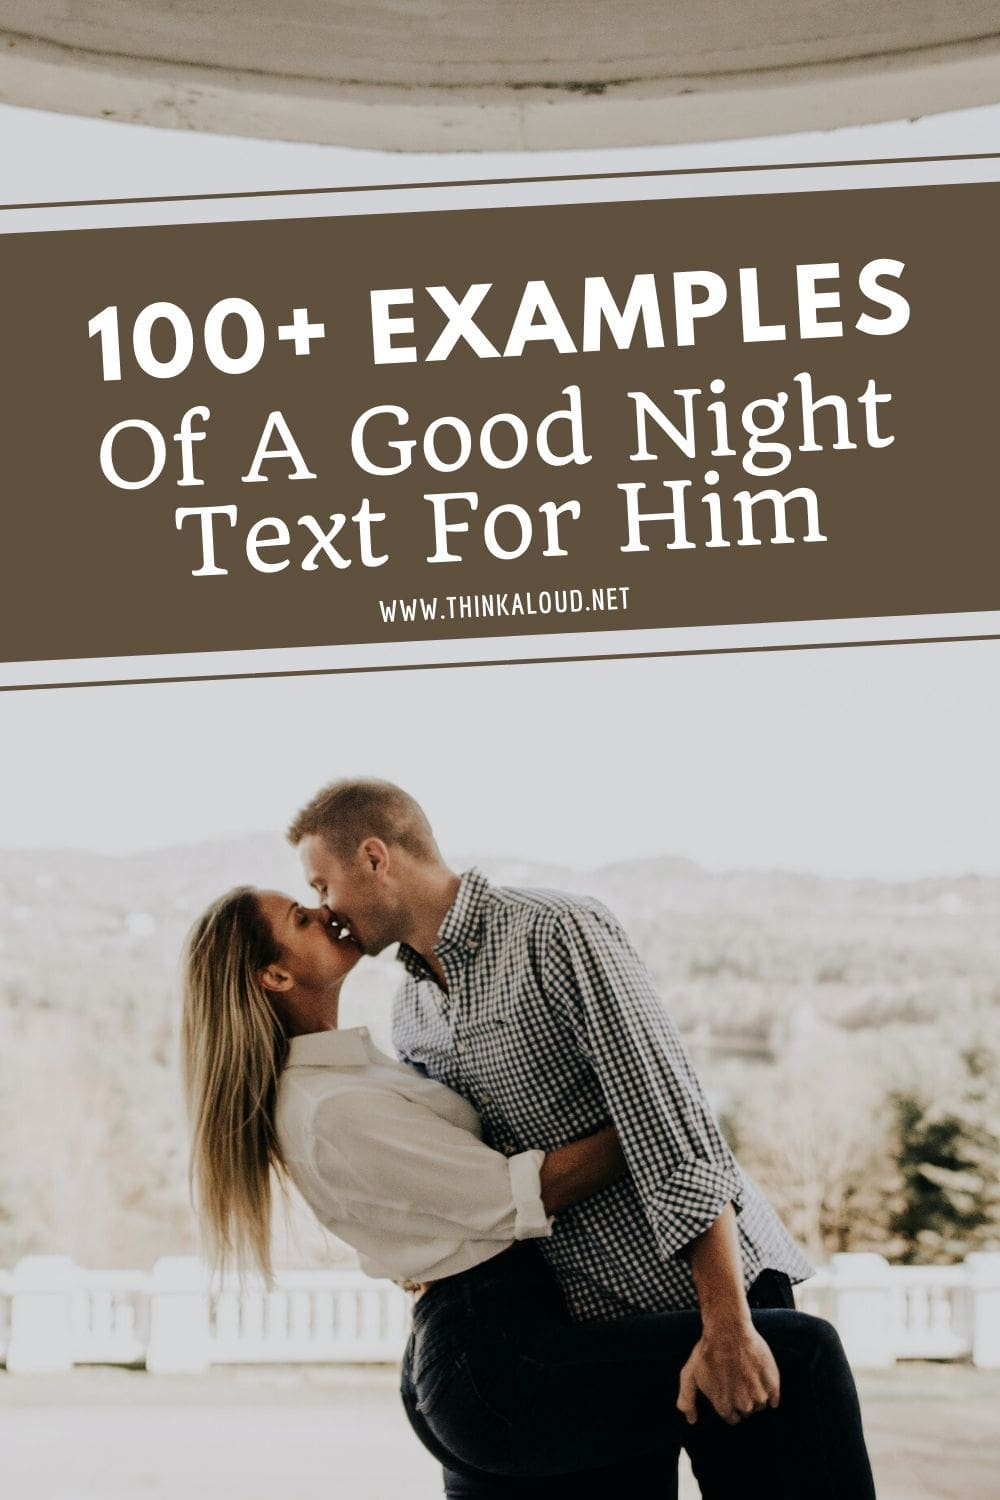 100+ Examples Of A Good Night Text For Him